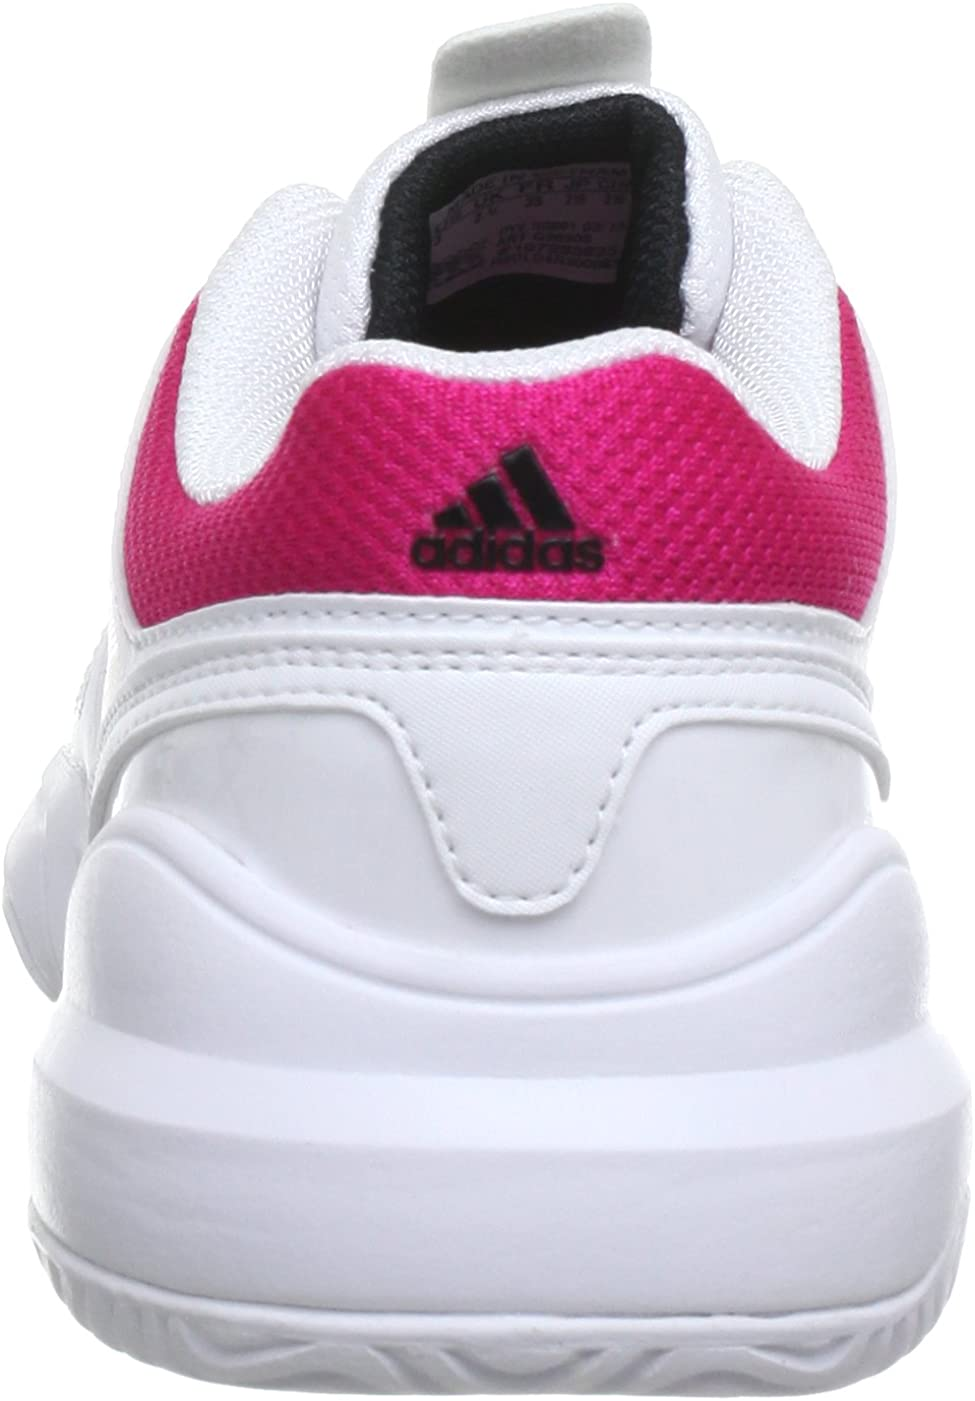 adidas Performance Galaxy Elite 2 K (Tennis), Zapatillas de Tenis Infantil, Blanco-Weiß (Running White FTW/Blast Pink F13 / Black 1), 37 1/3 EU: Amazon.es: Zapatos y complementos